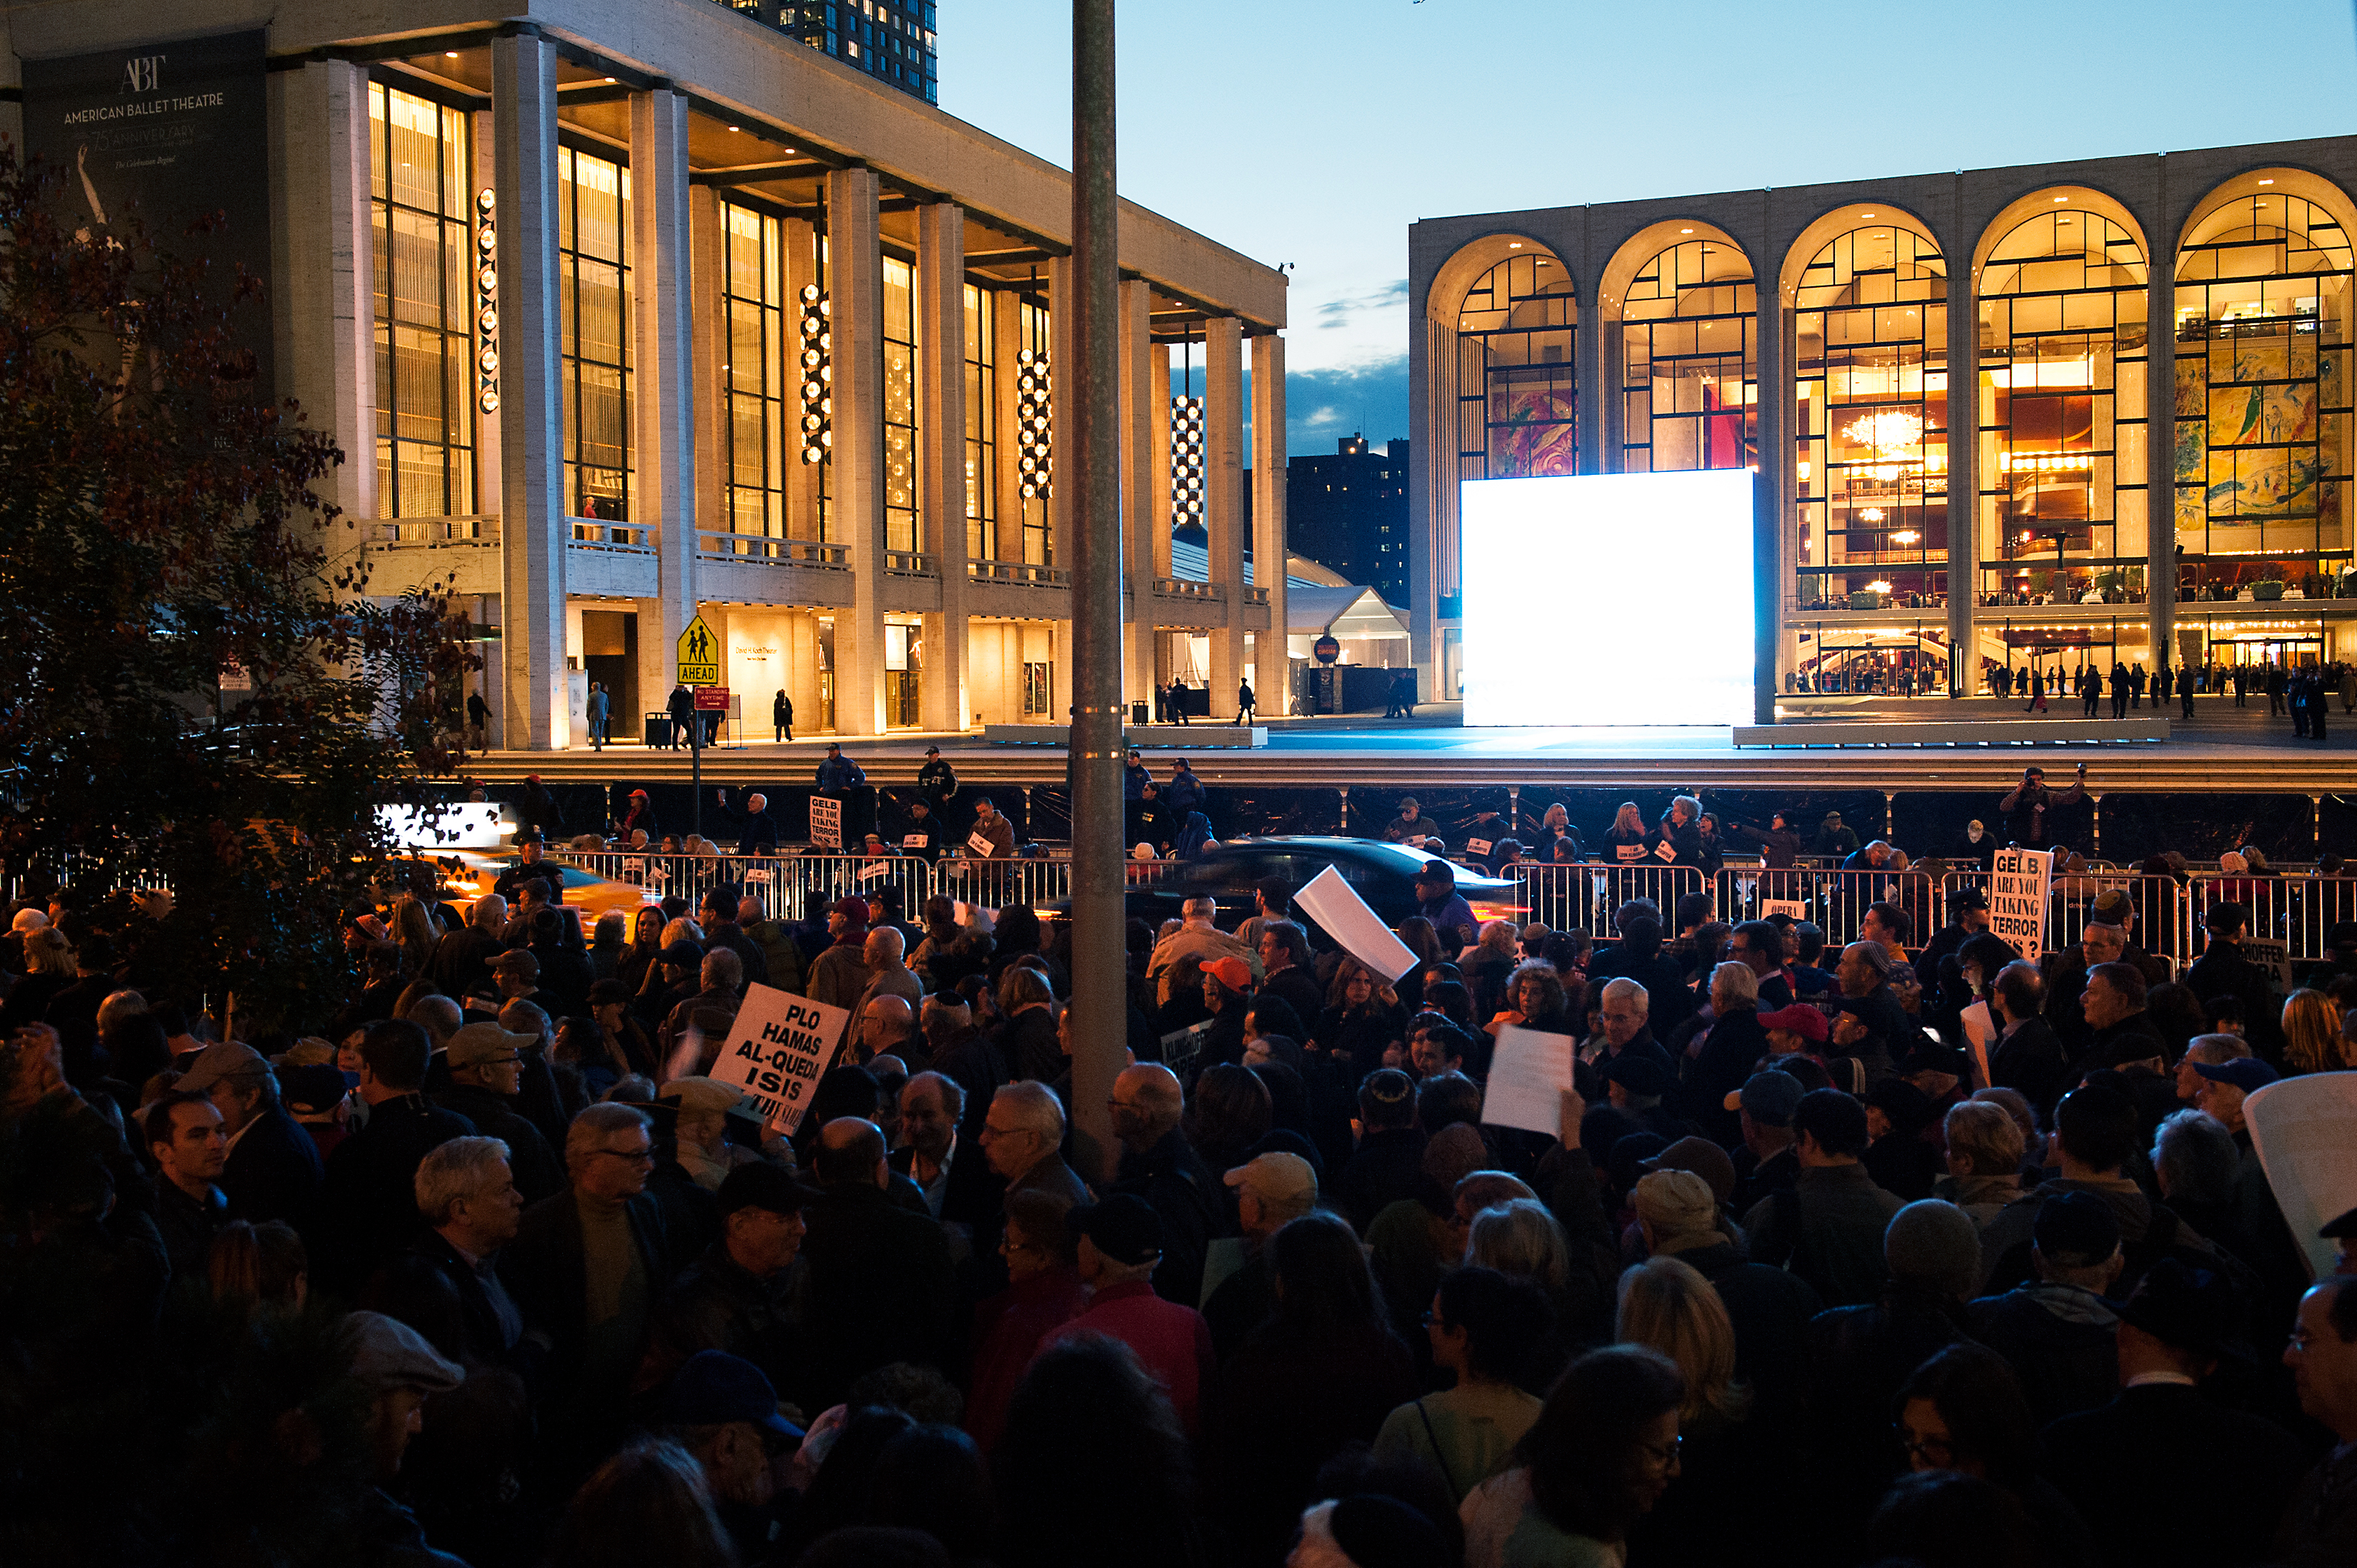 Protestors hold signs outside the Metropolitan Opera at Lincoln Center on opening night of the opera,  The Death of Klinghoffer  on October 20, 2014 in New York City. The opera has been accused of anti-Semitism and demonstrators protested its inclusion in this year's schedule at the Metropolitan Opera.